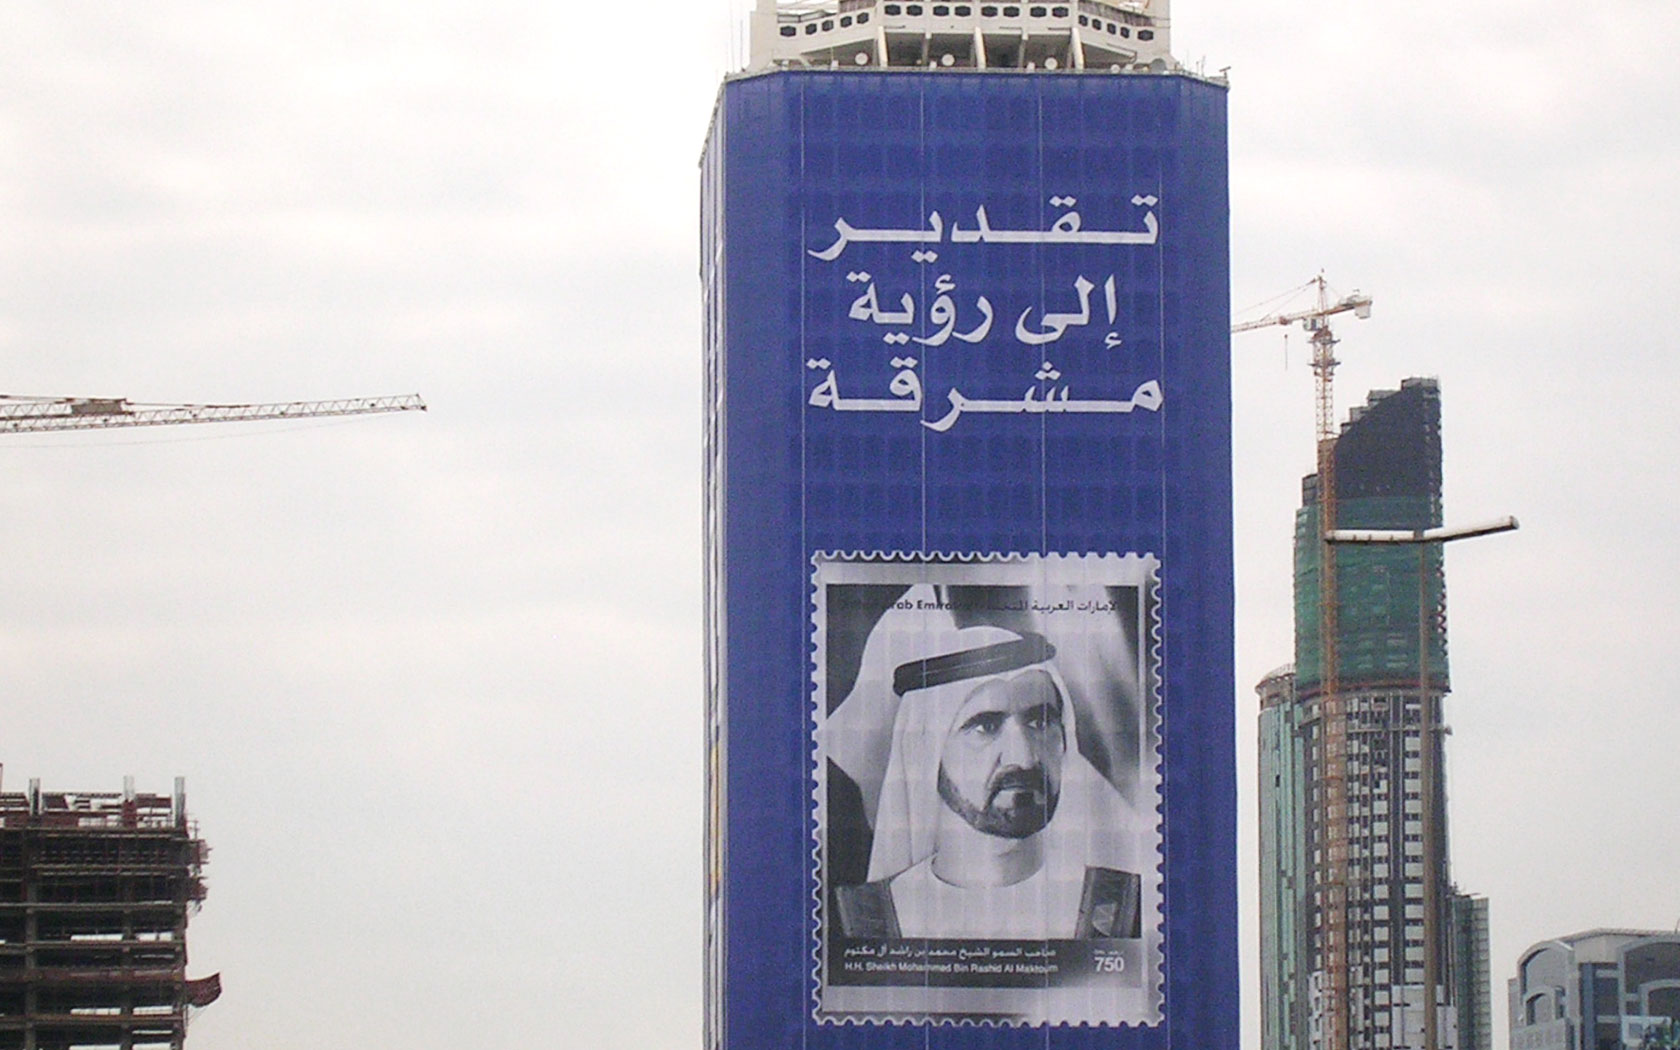 Kleinhempel Large Format Printing World Trade Center Dubai Objektverhüllung